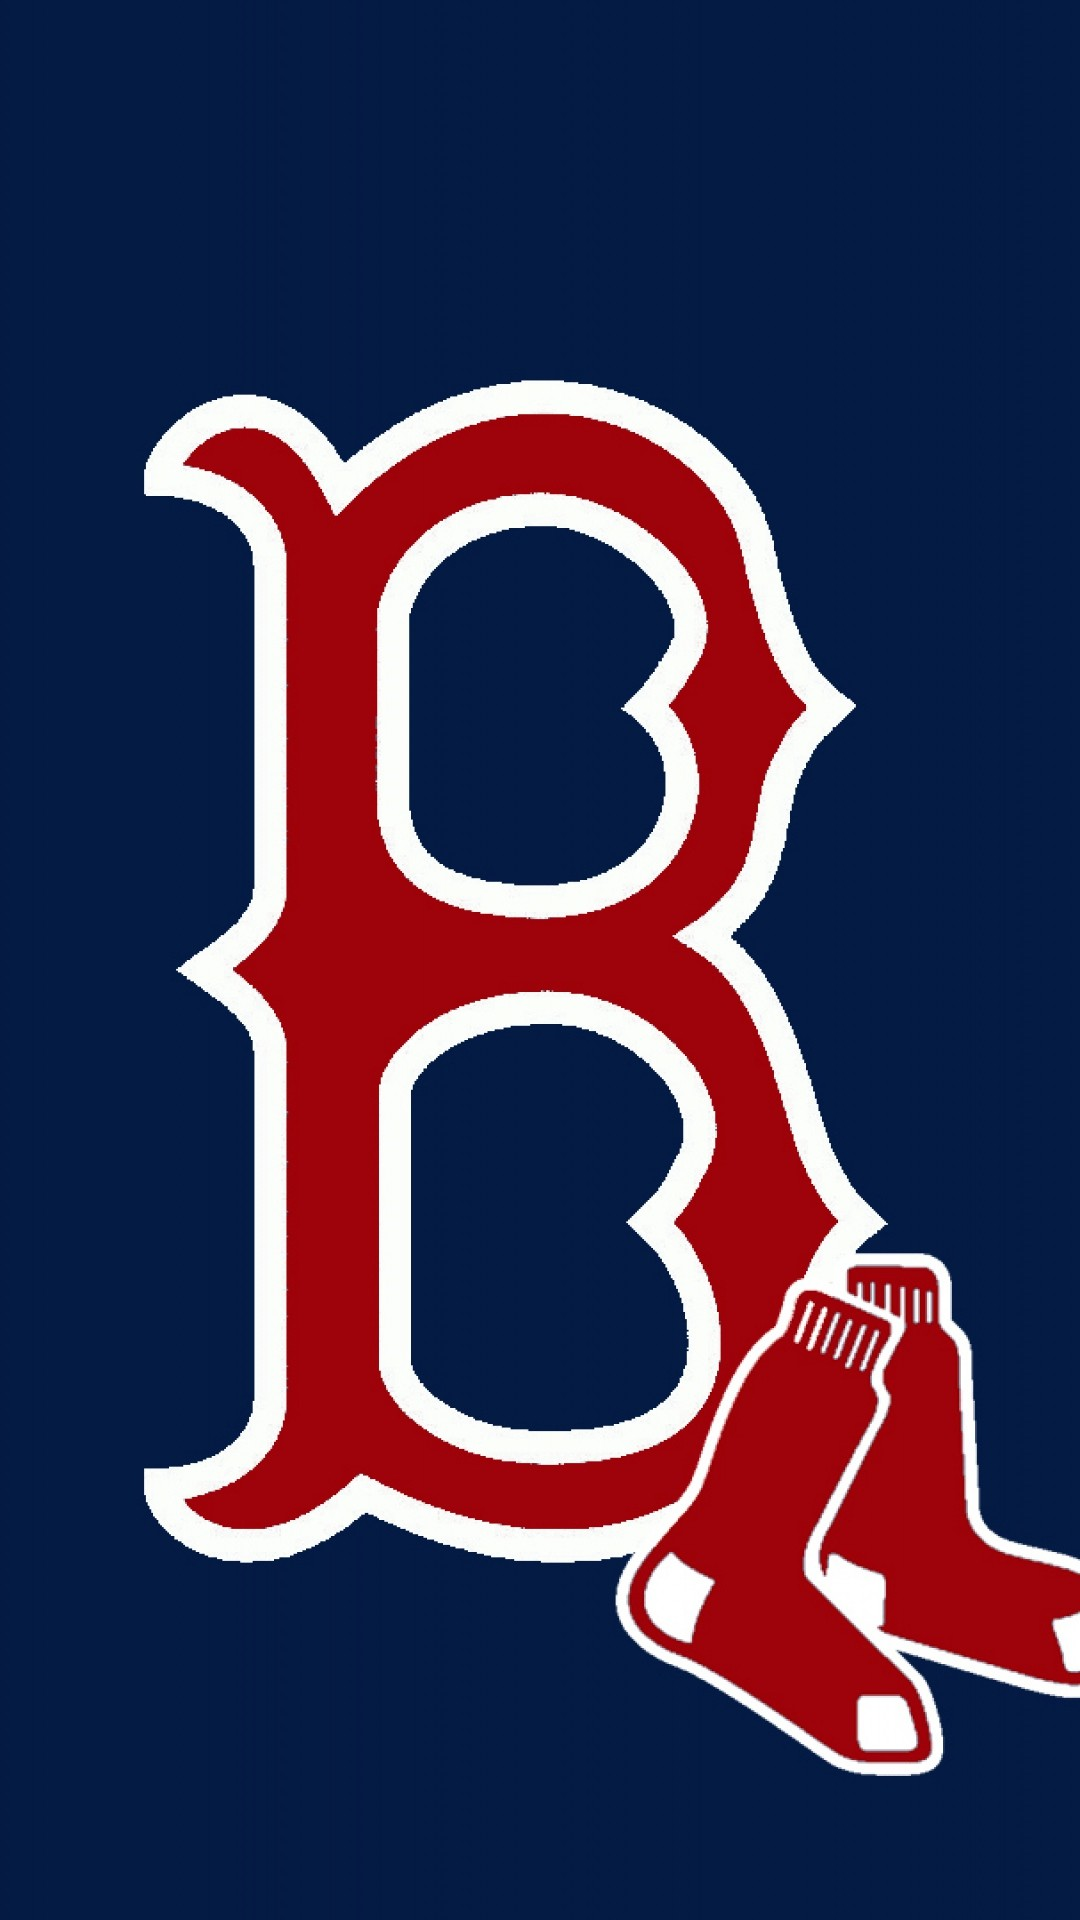 Boston red sox hd wallpaper 67 images - Red sox iphone background ...